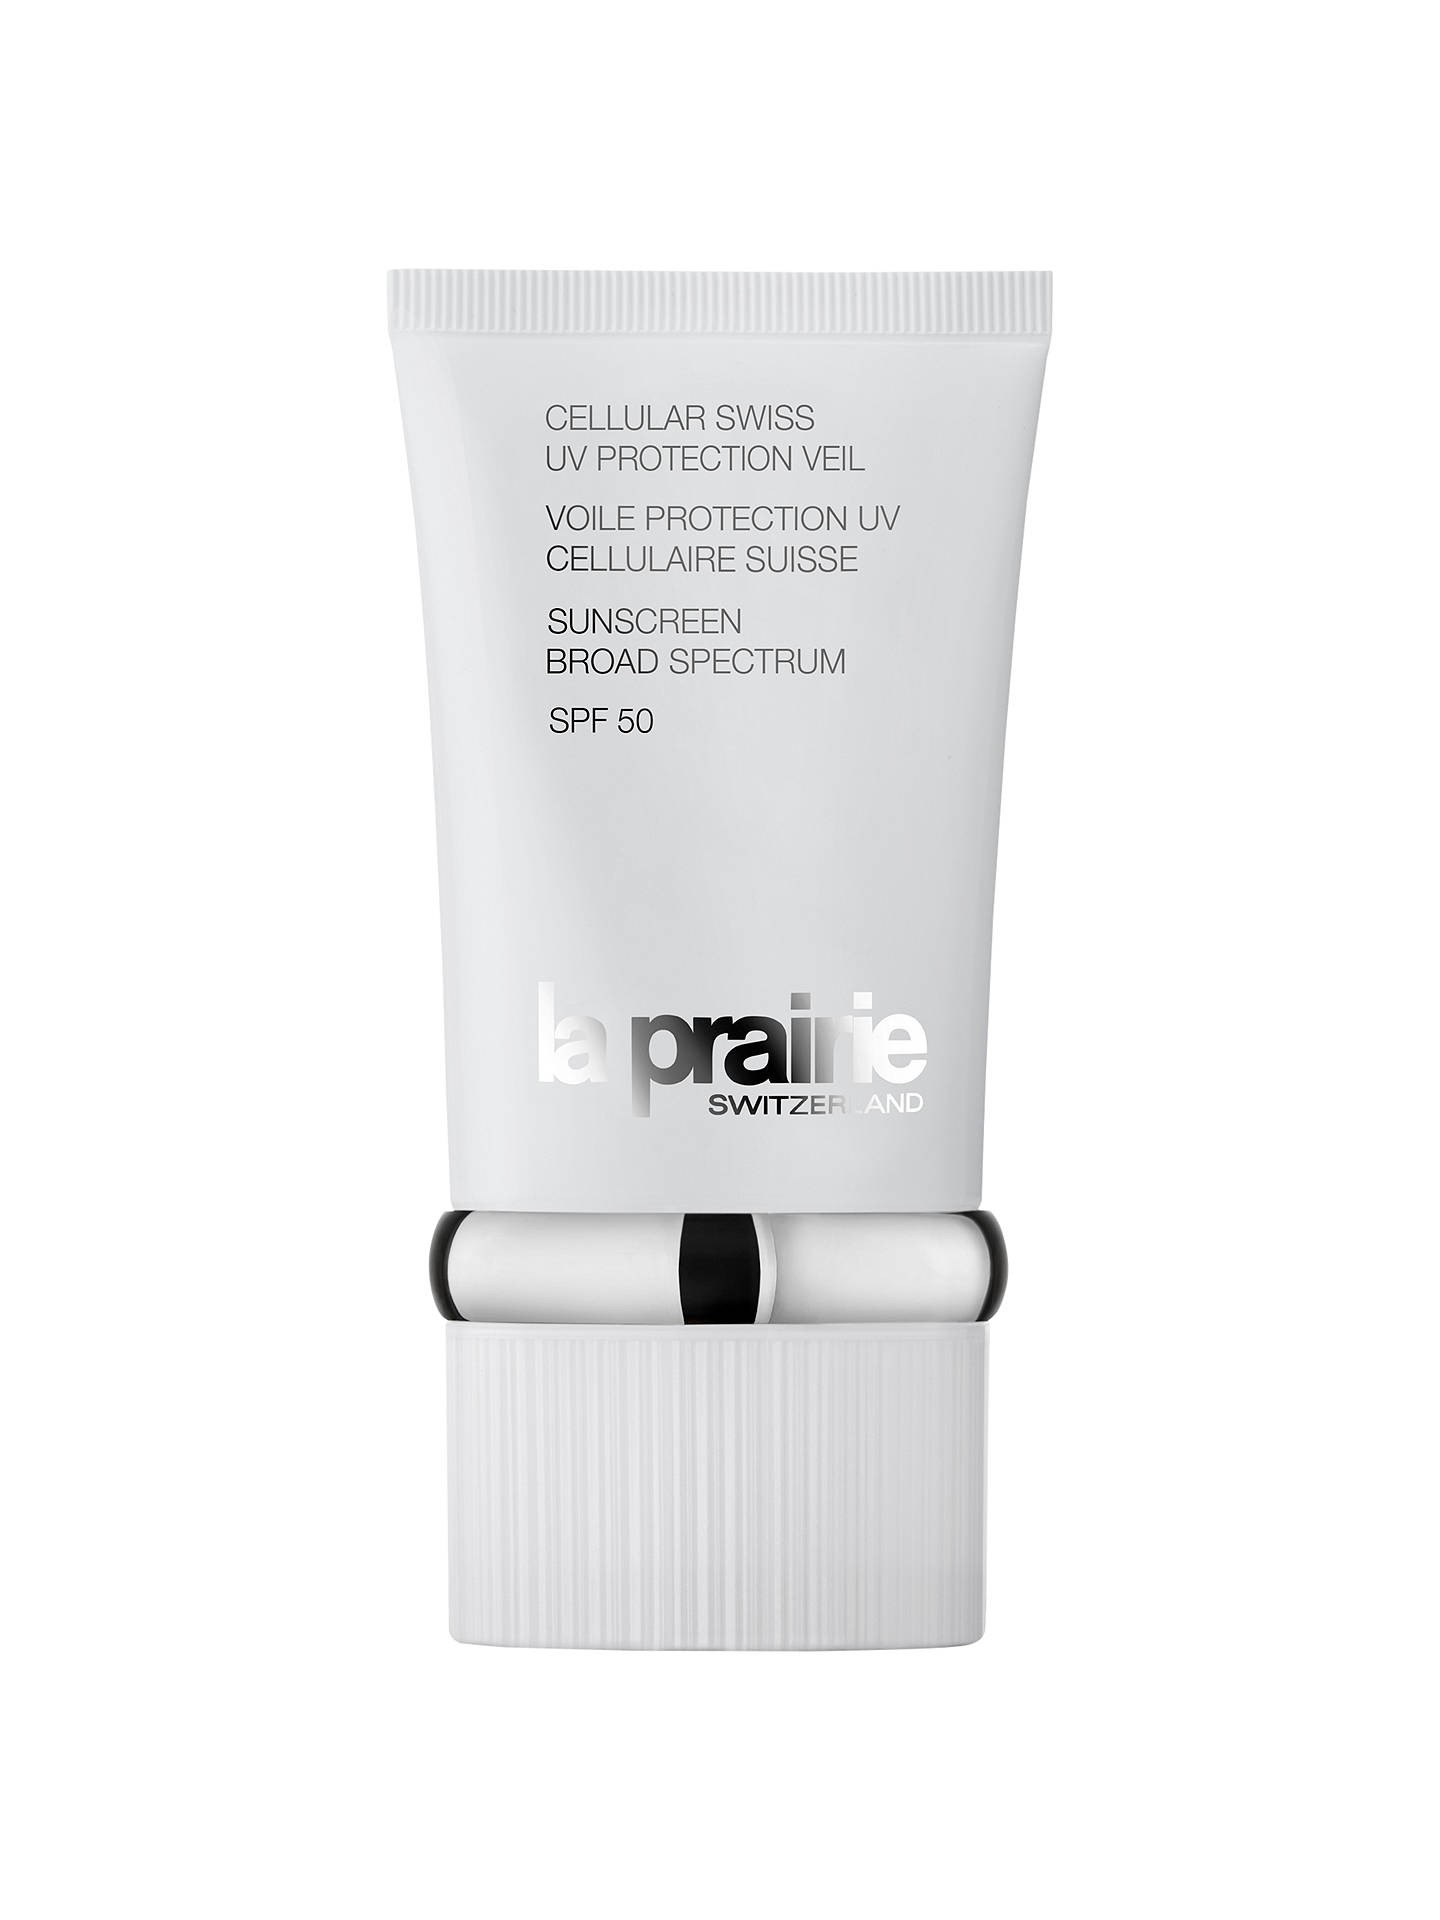 BuyLa Prairie Cellular Swiss UV Protection Veil SPF 50, 50ml Online at johnlewis.com